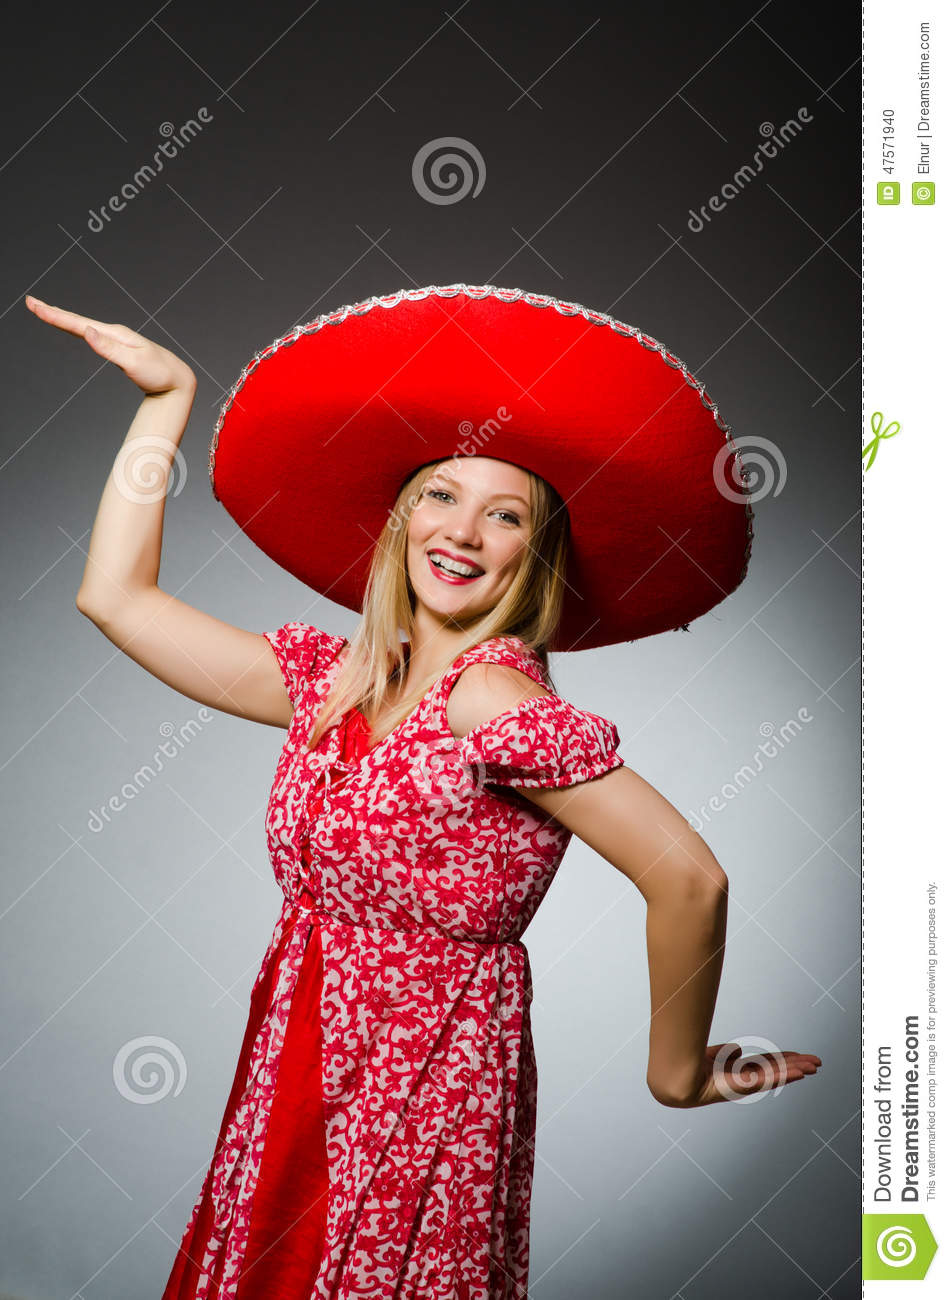 Woman wearing sombrero hat stock photo. Image of party - 47571940 7d404397c6b